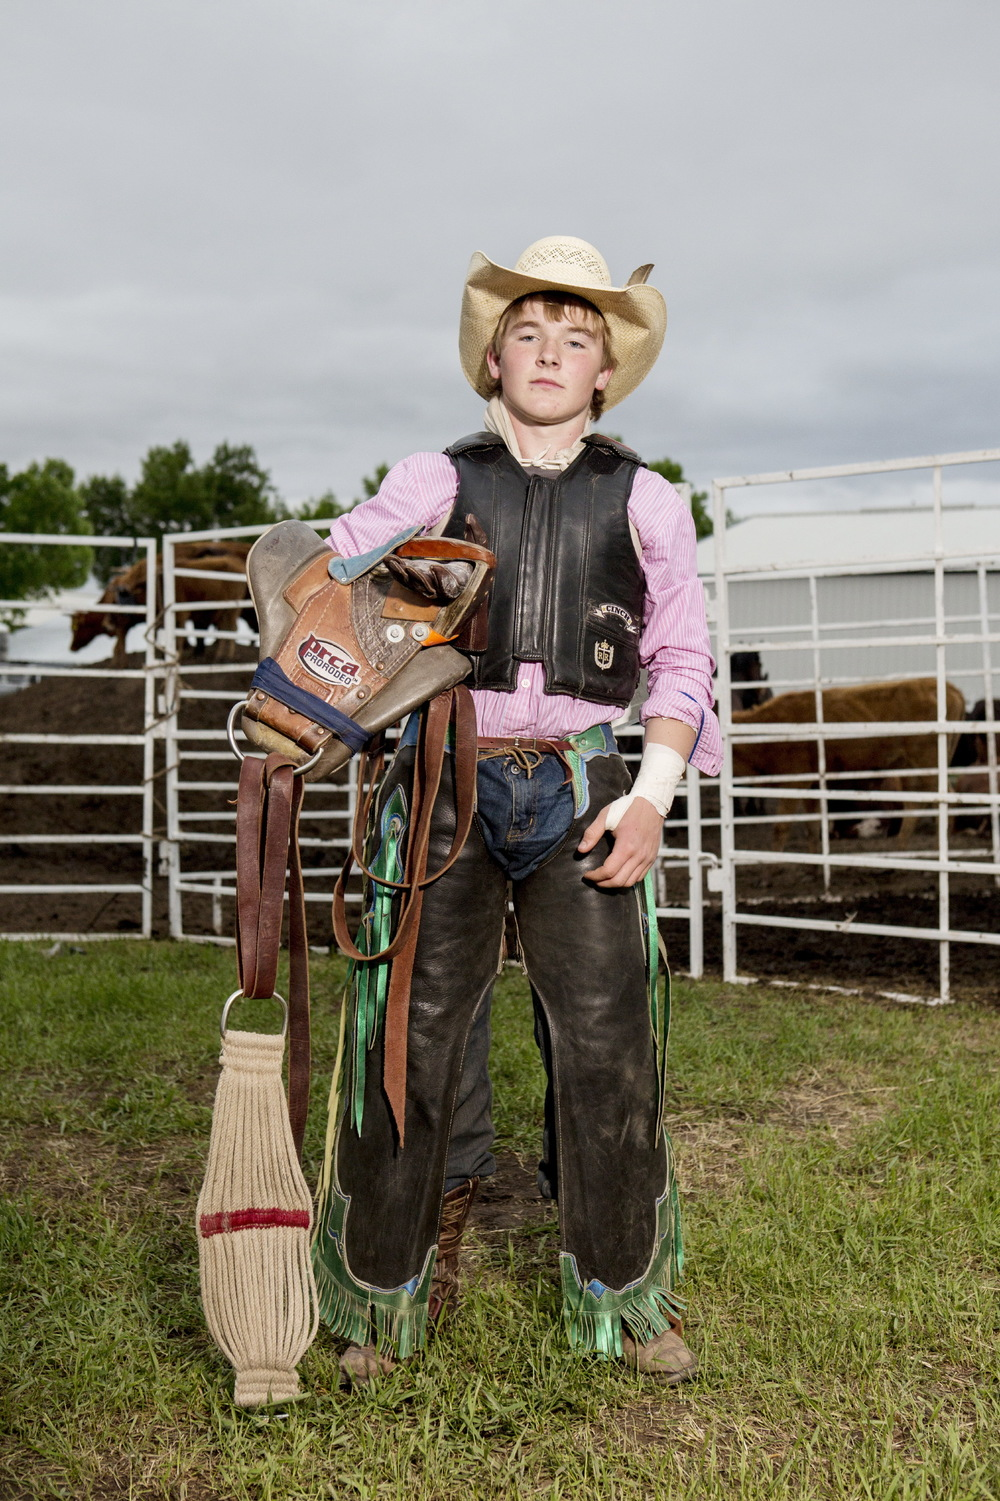 Little Cowboy for ESPN The Magazine